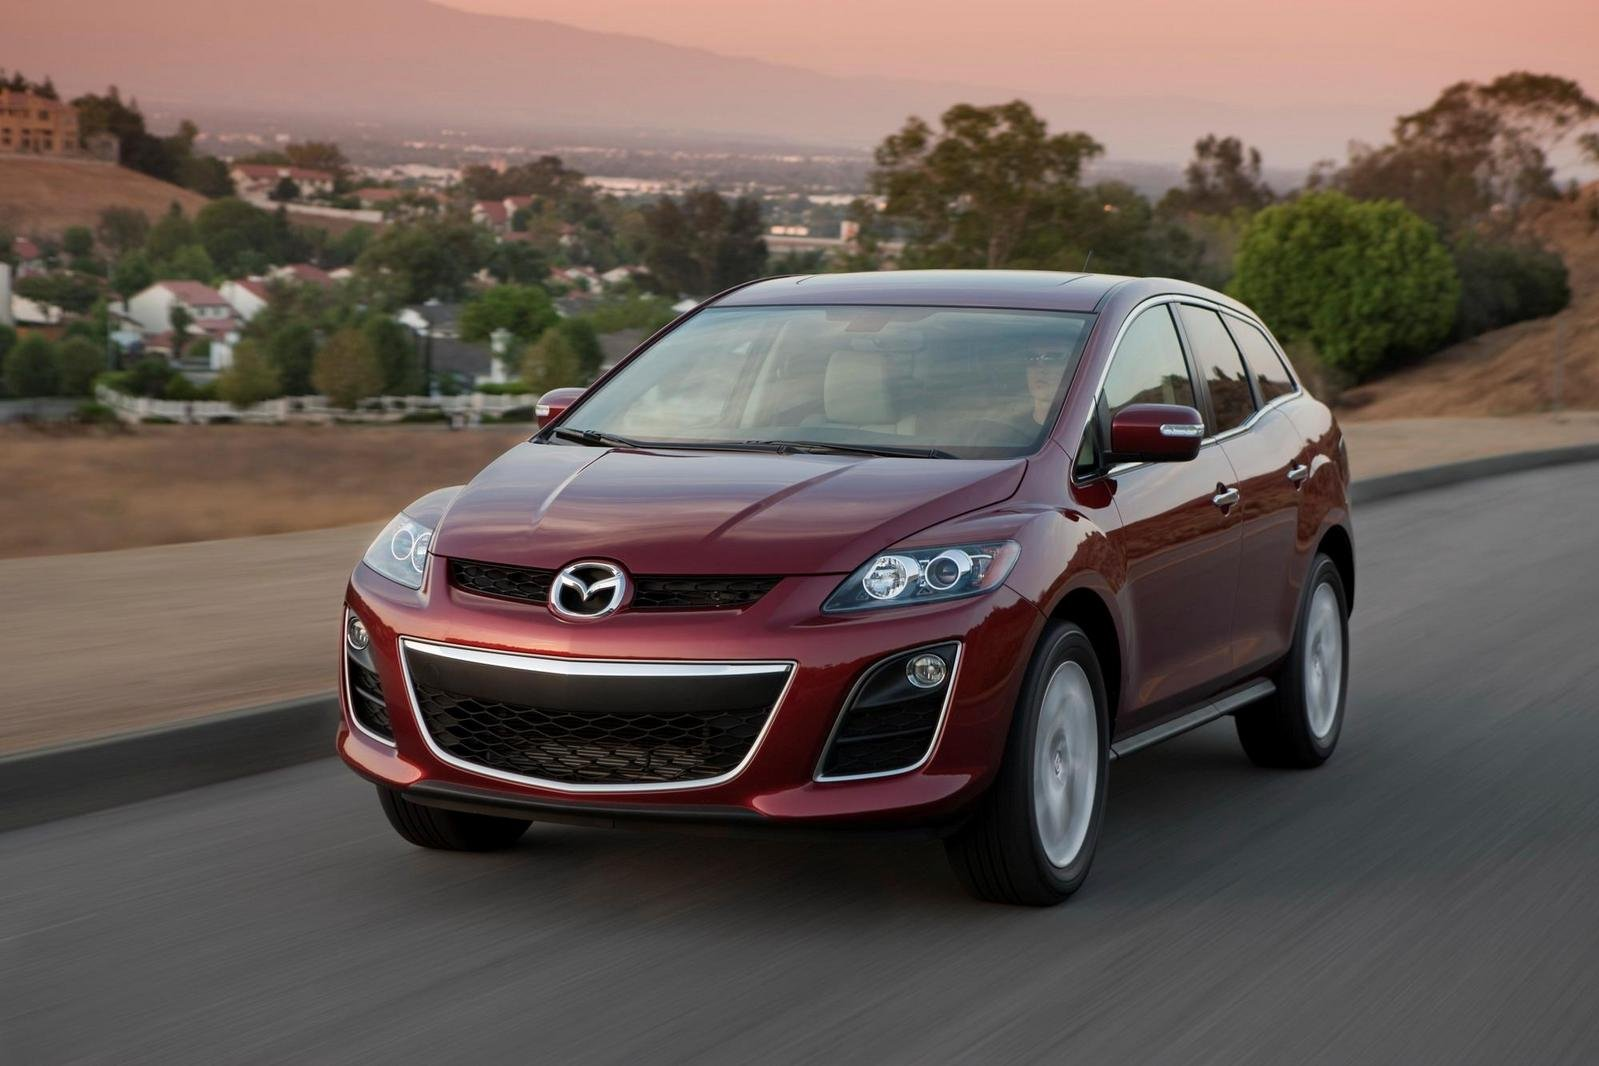 2010 mazda cx 7 review top speed. Black Bedroom Furniture Sets. Home Design Ideas